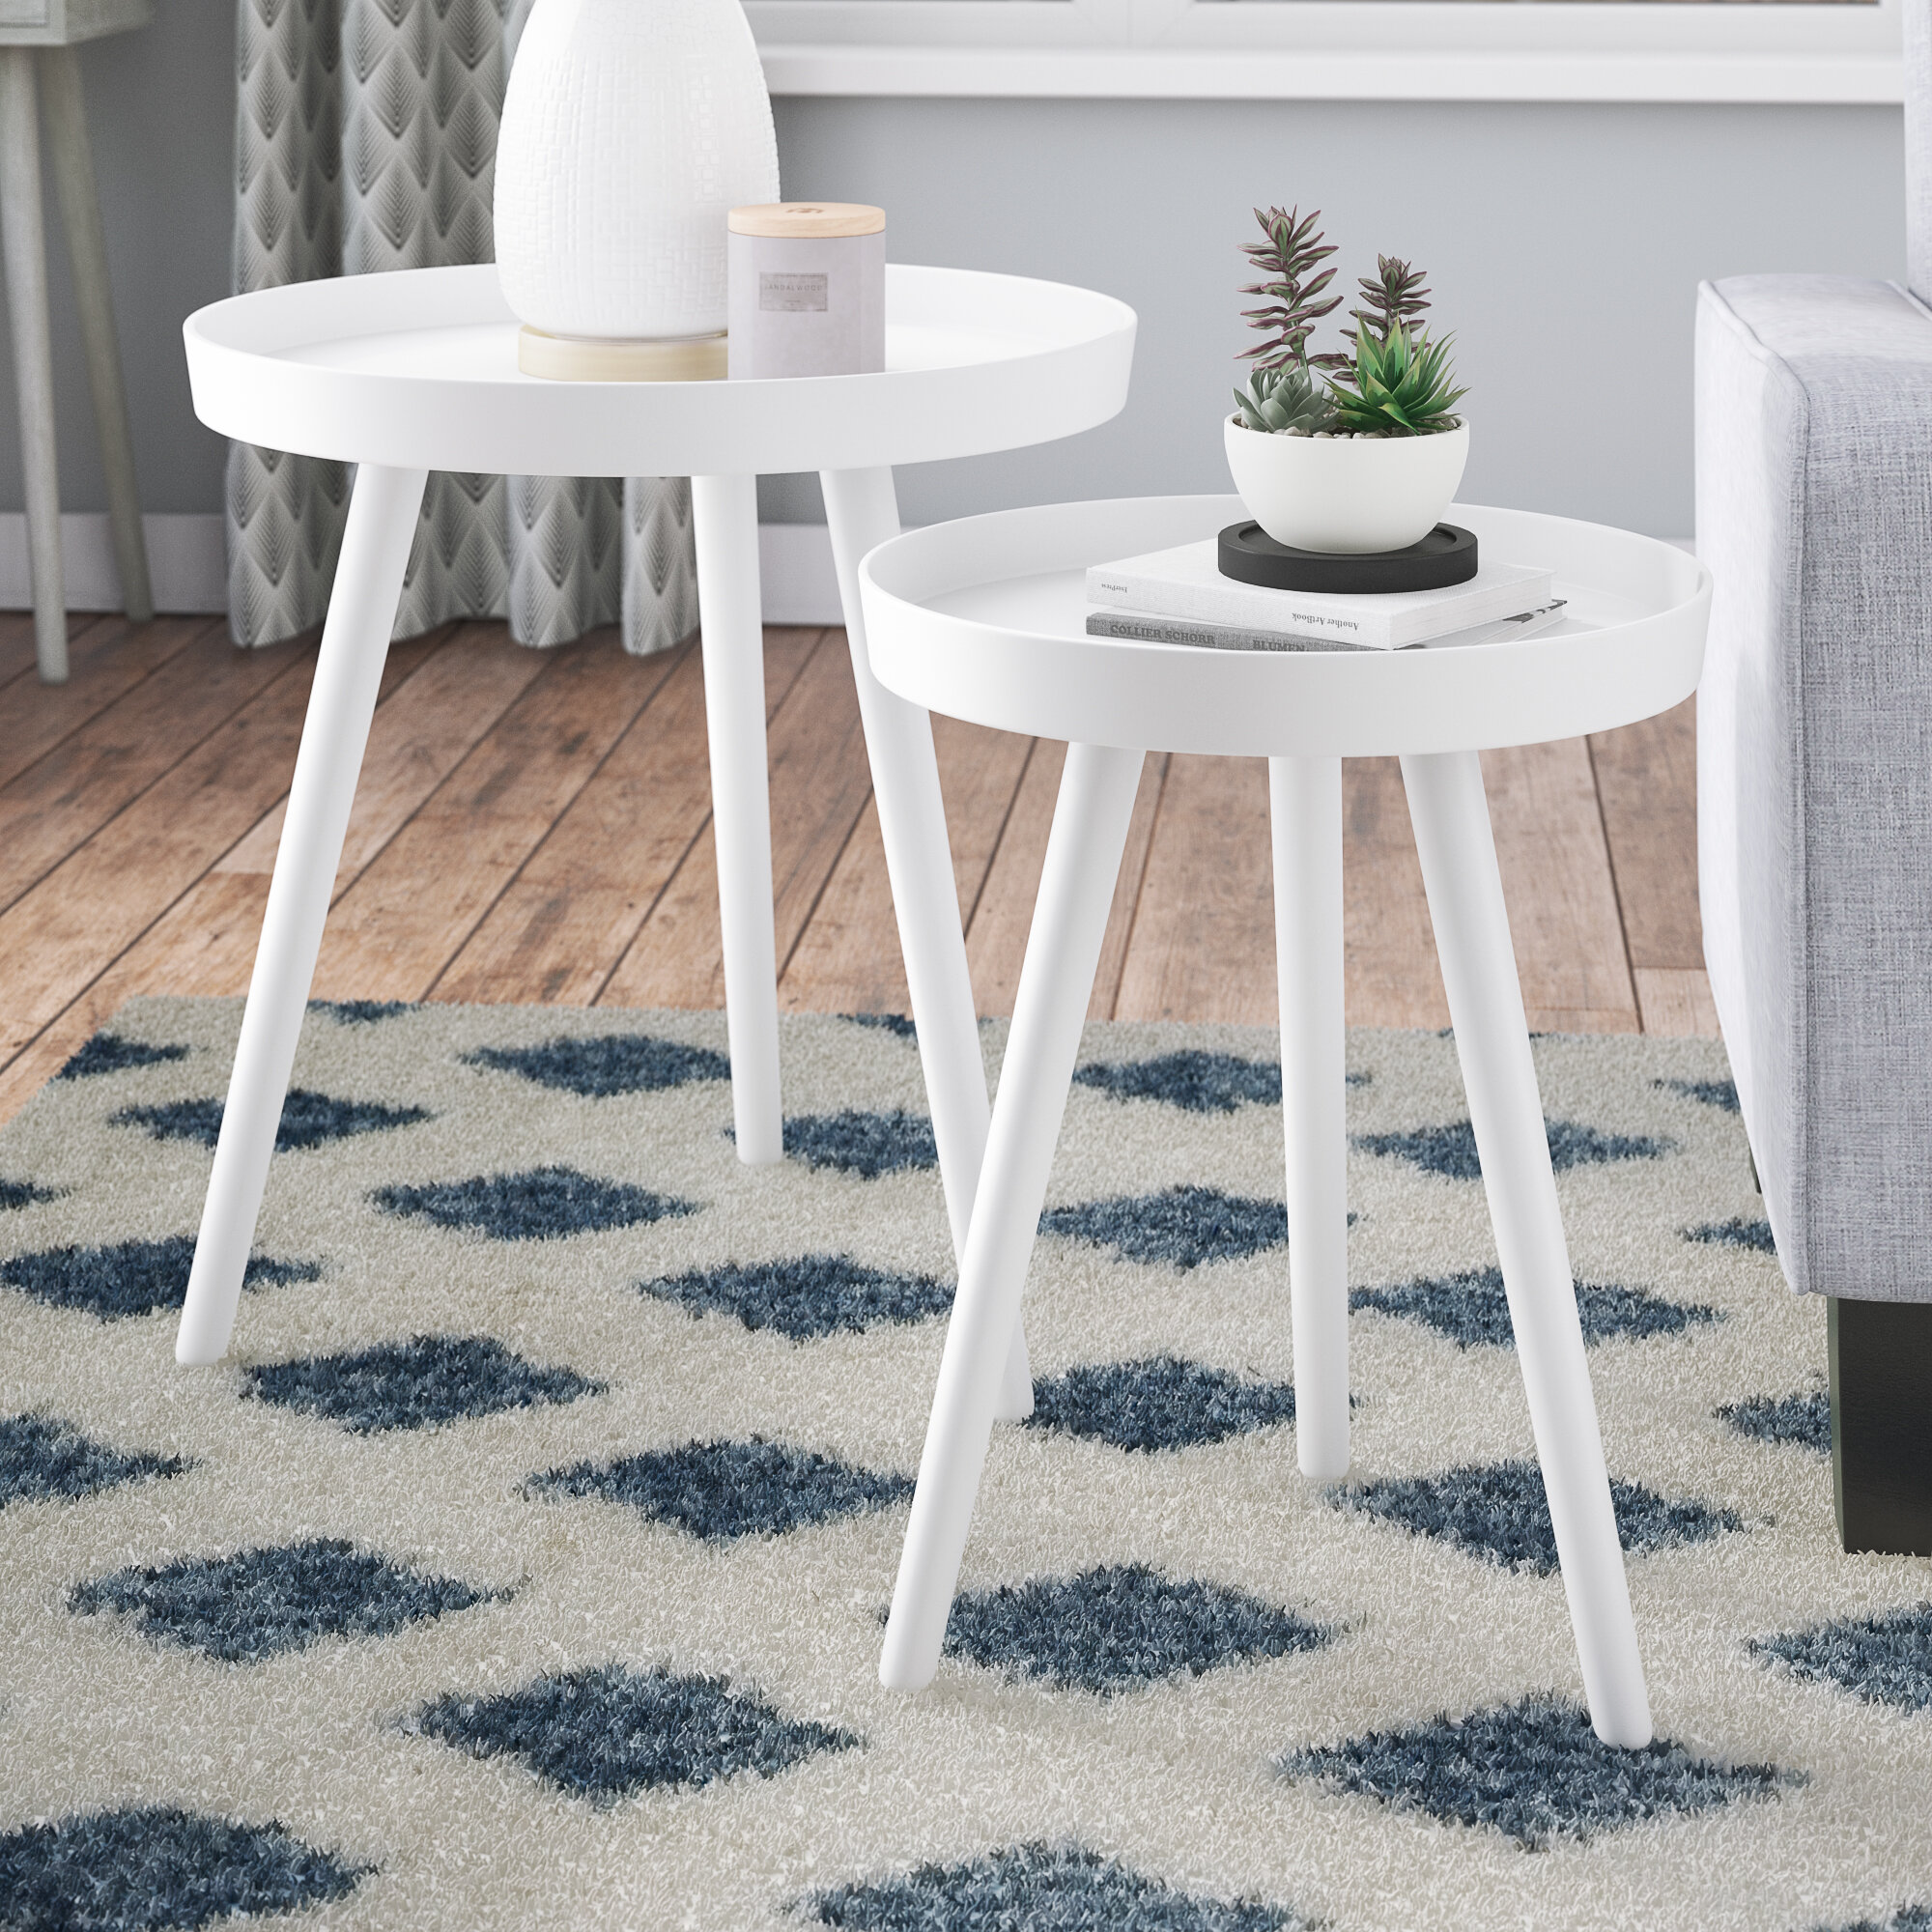 SogesPower Nesting Coffee Tables Sets of 2 End Table Set Side Tables Nightstand Stacking Side Table Set for Living Room Nesting Table for Bedroom Sofa Table Set White SPBSB-009-CA